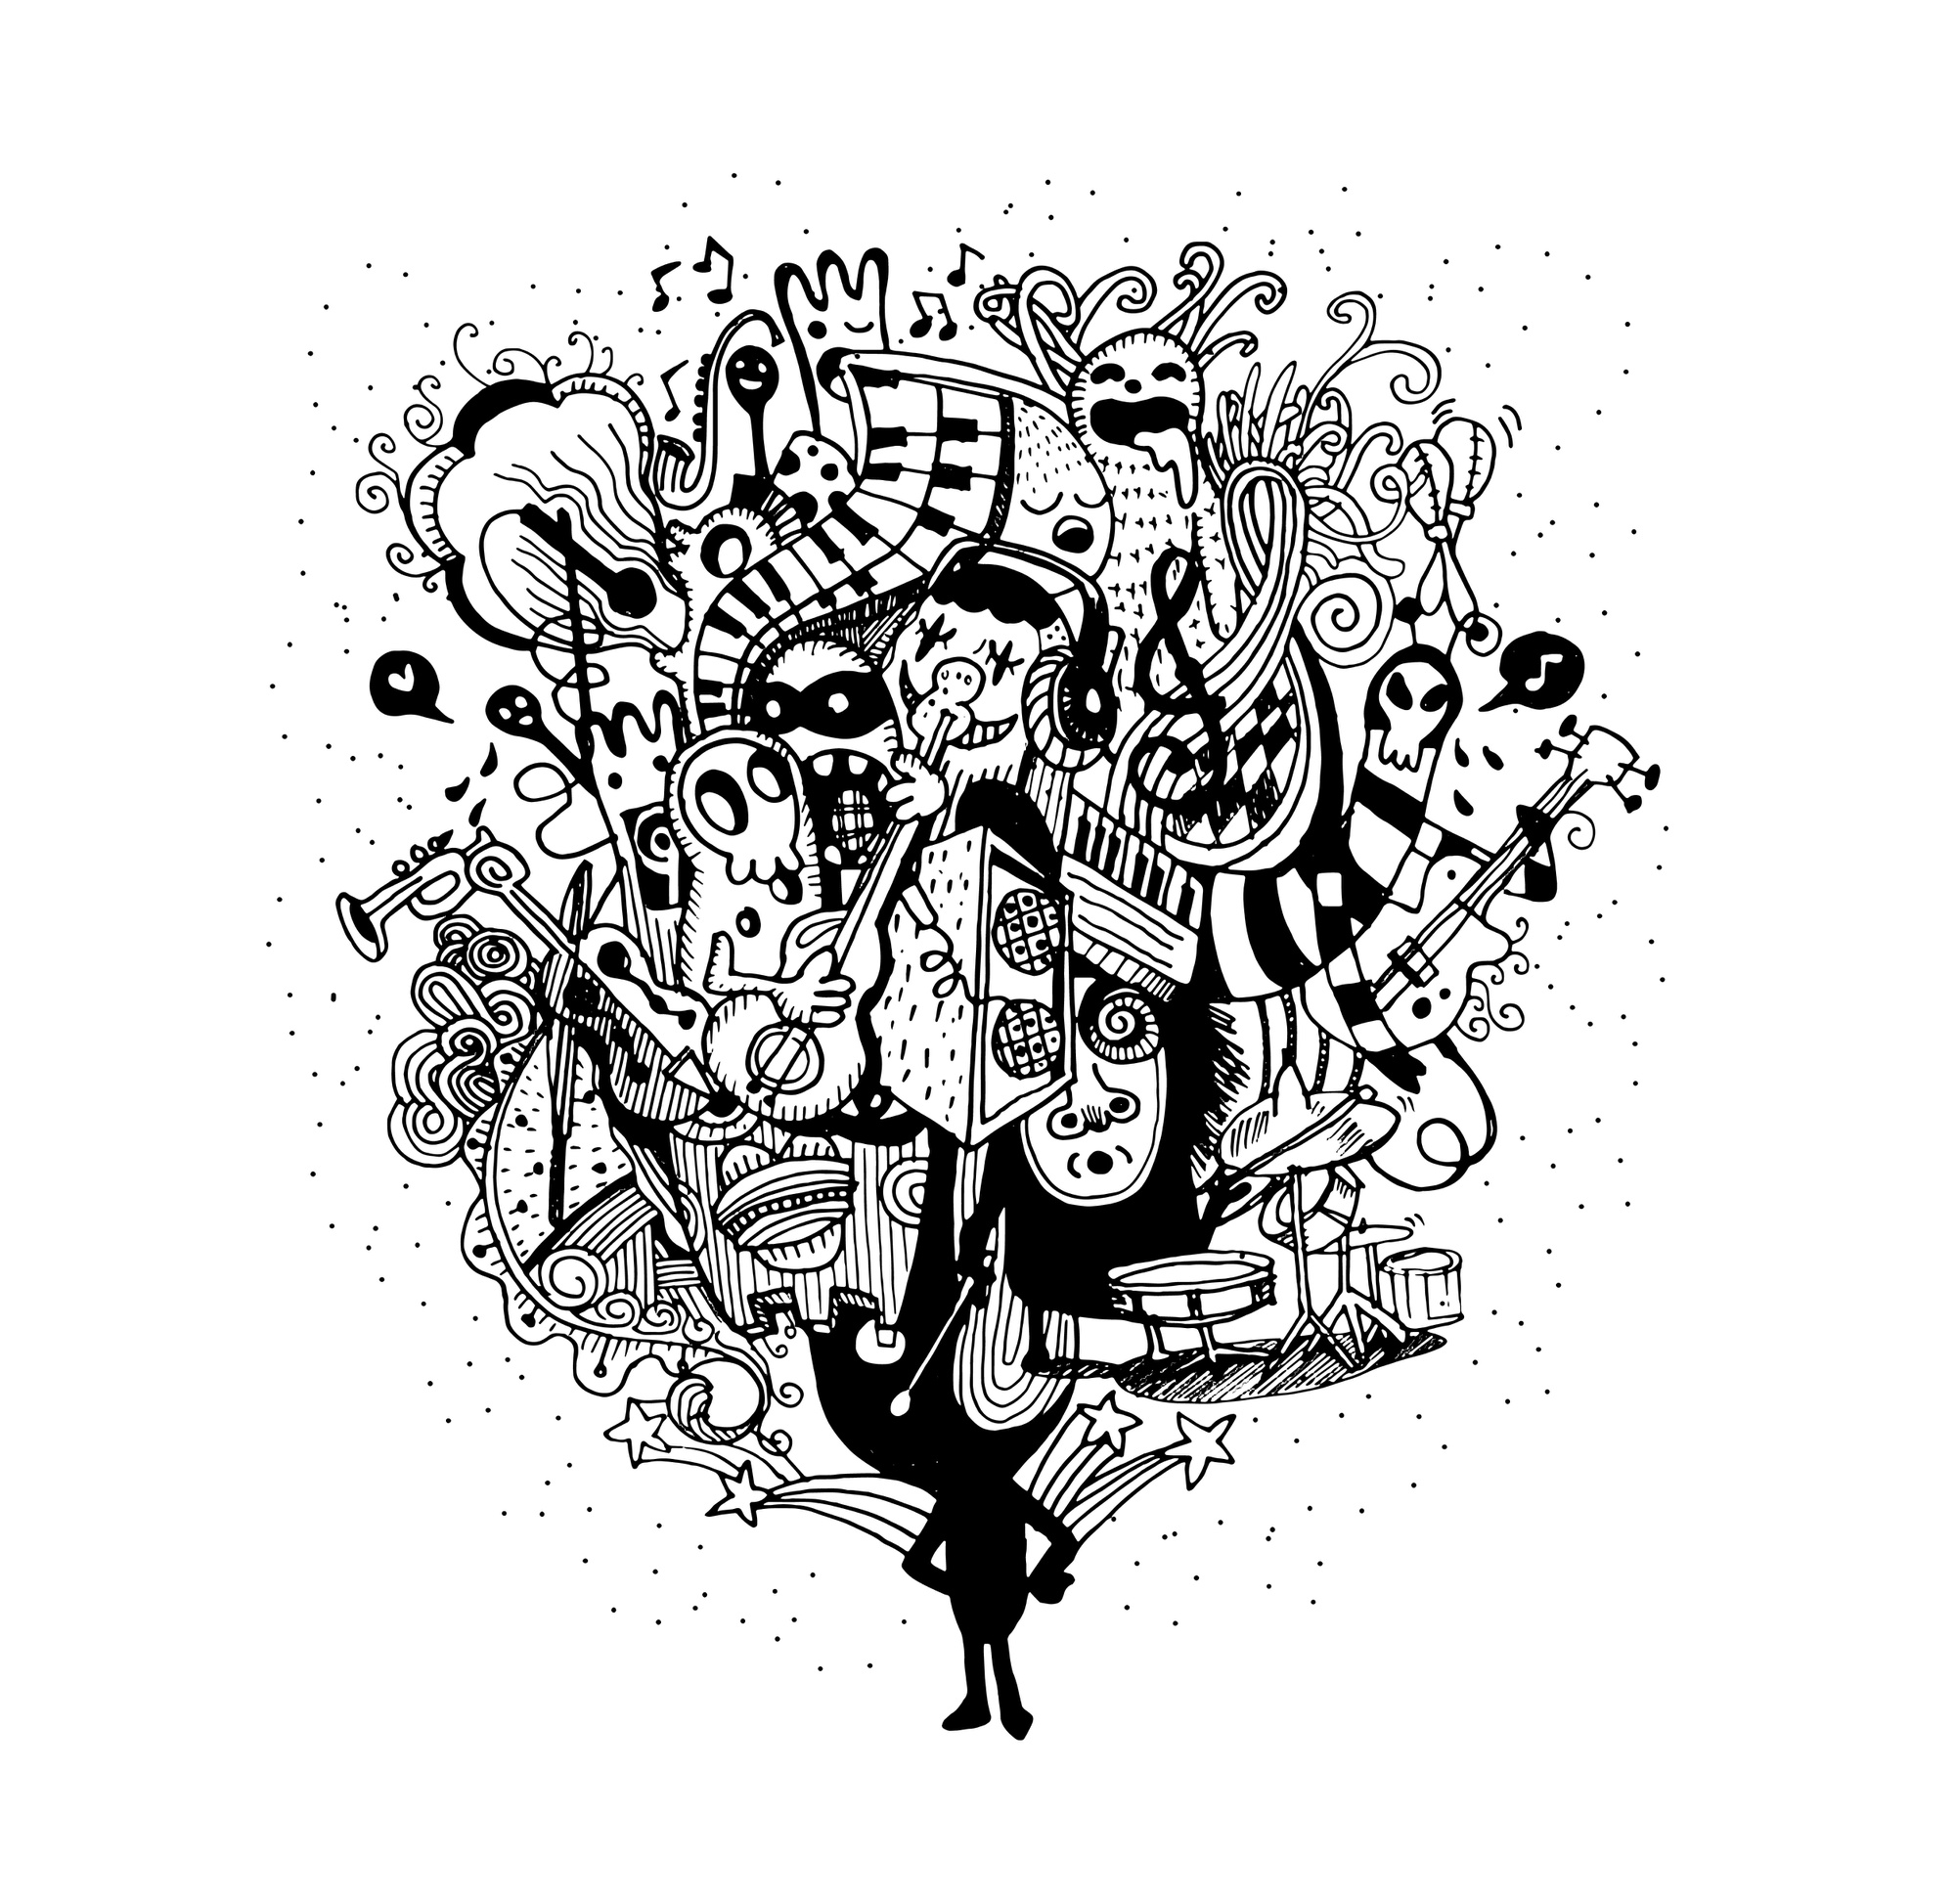 Monster band playing music hand drawn style